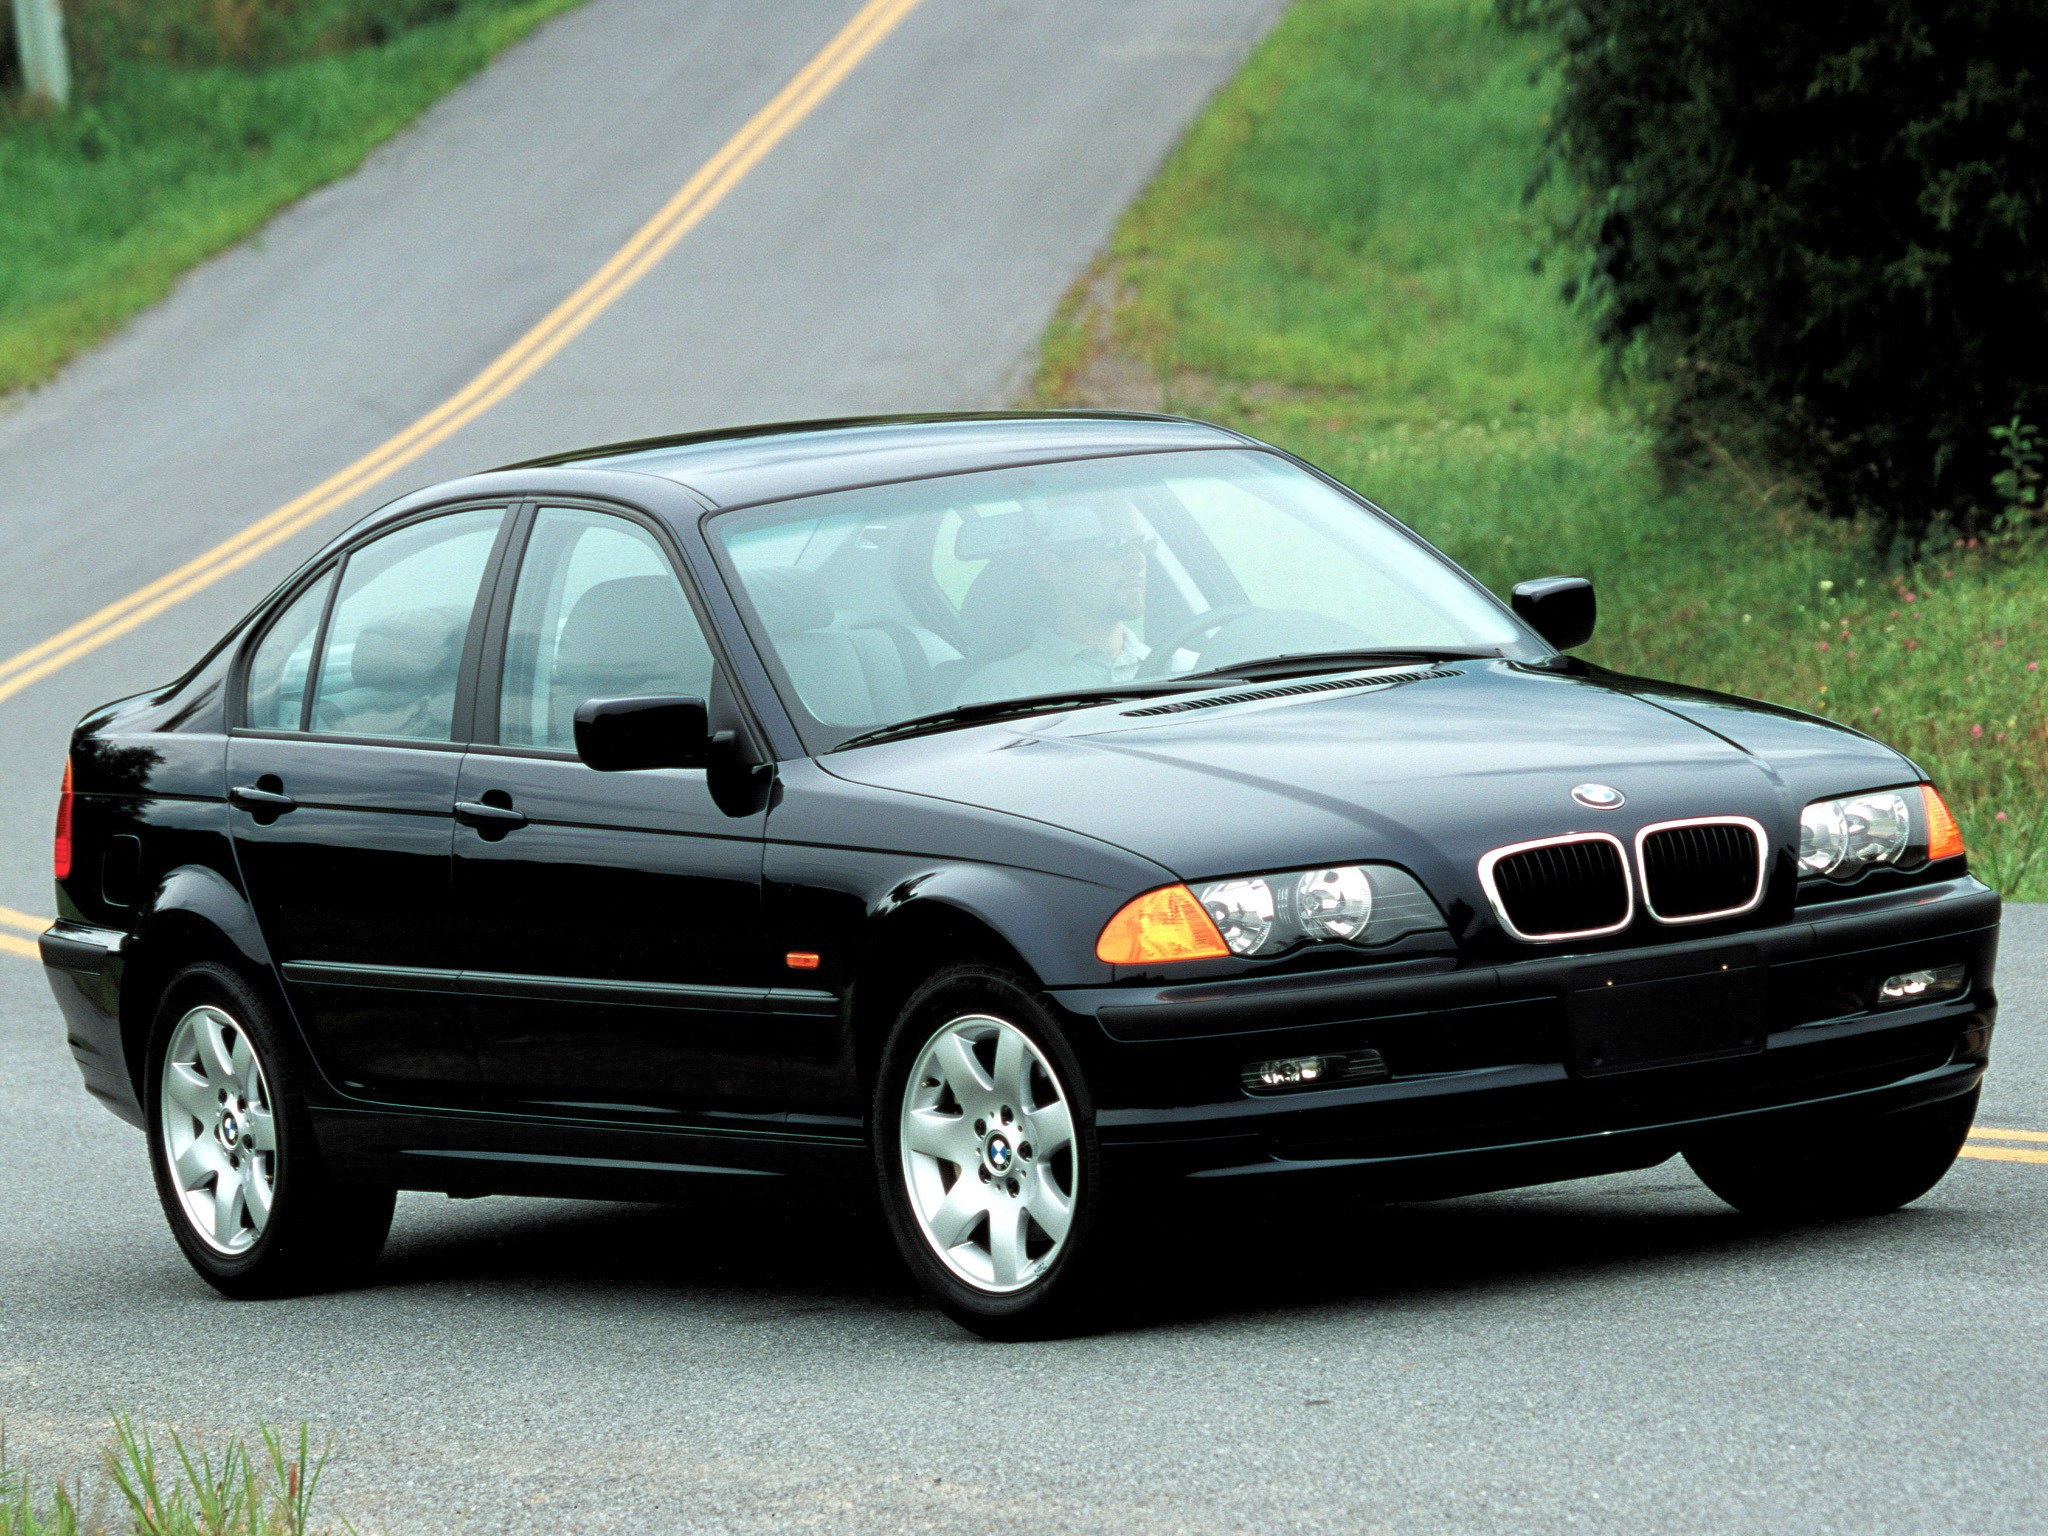 BMW 3 Series (E46) specs & photos - 1998, 1999, 2000, 2001